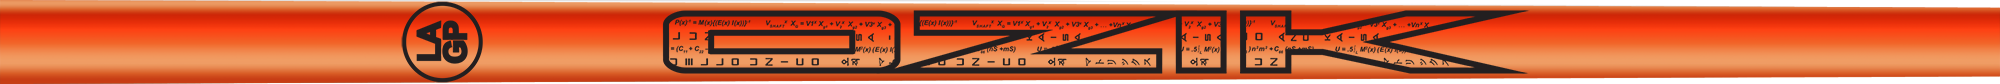 Ozik White Tie: Neon Orange Black Gloss - Wood 50 A